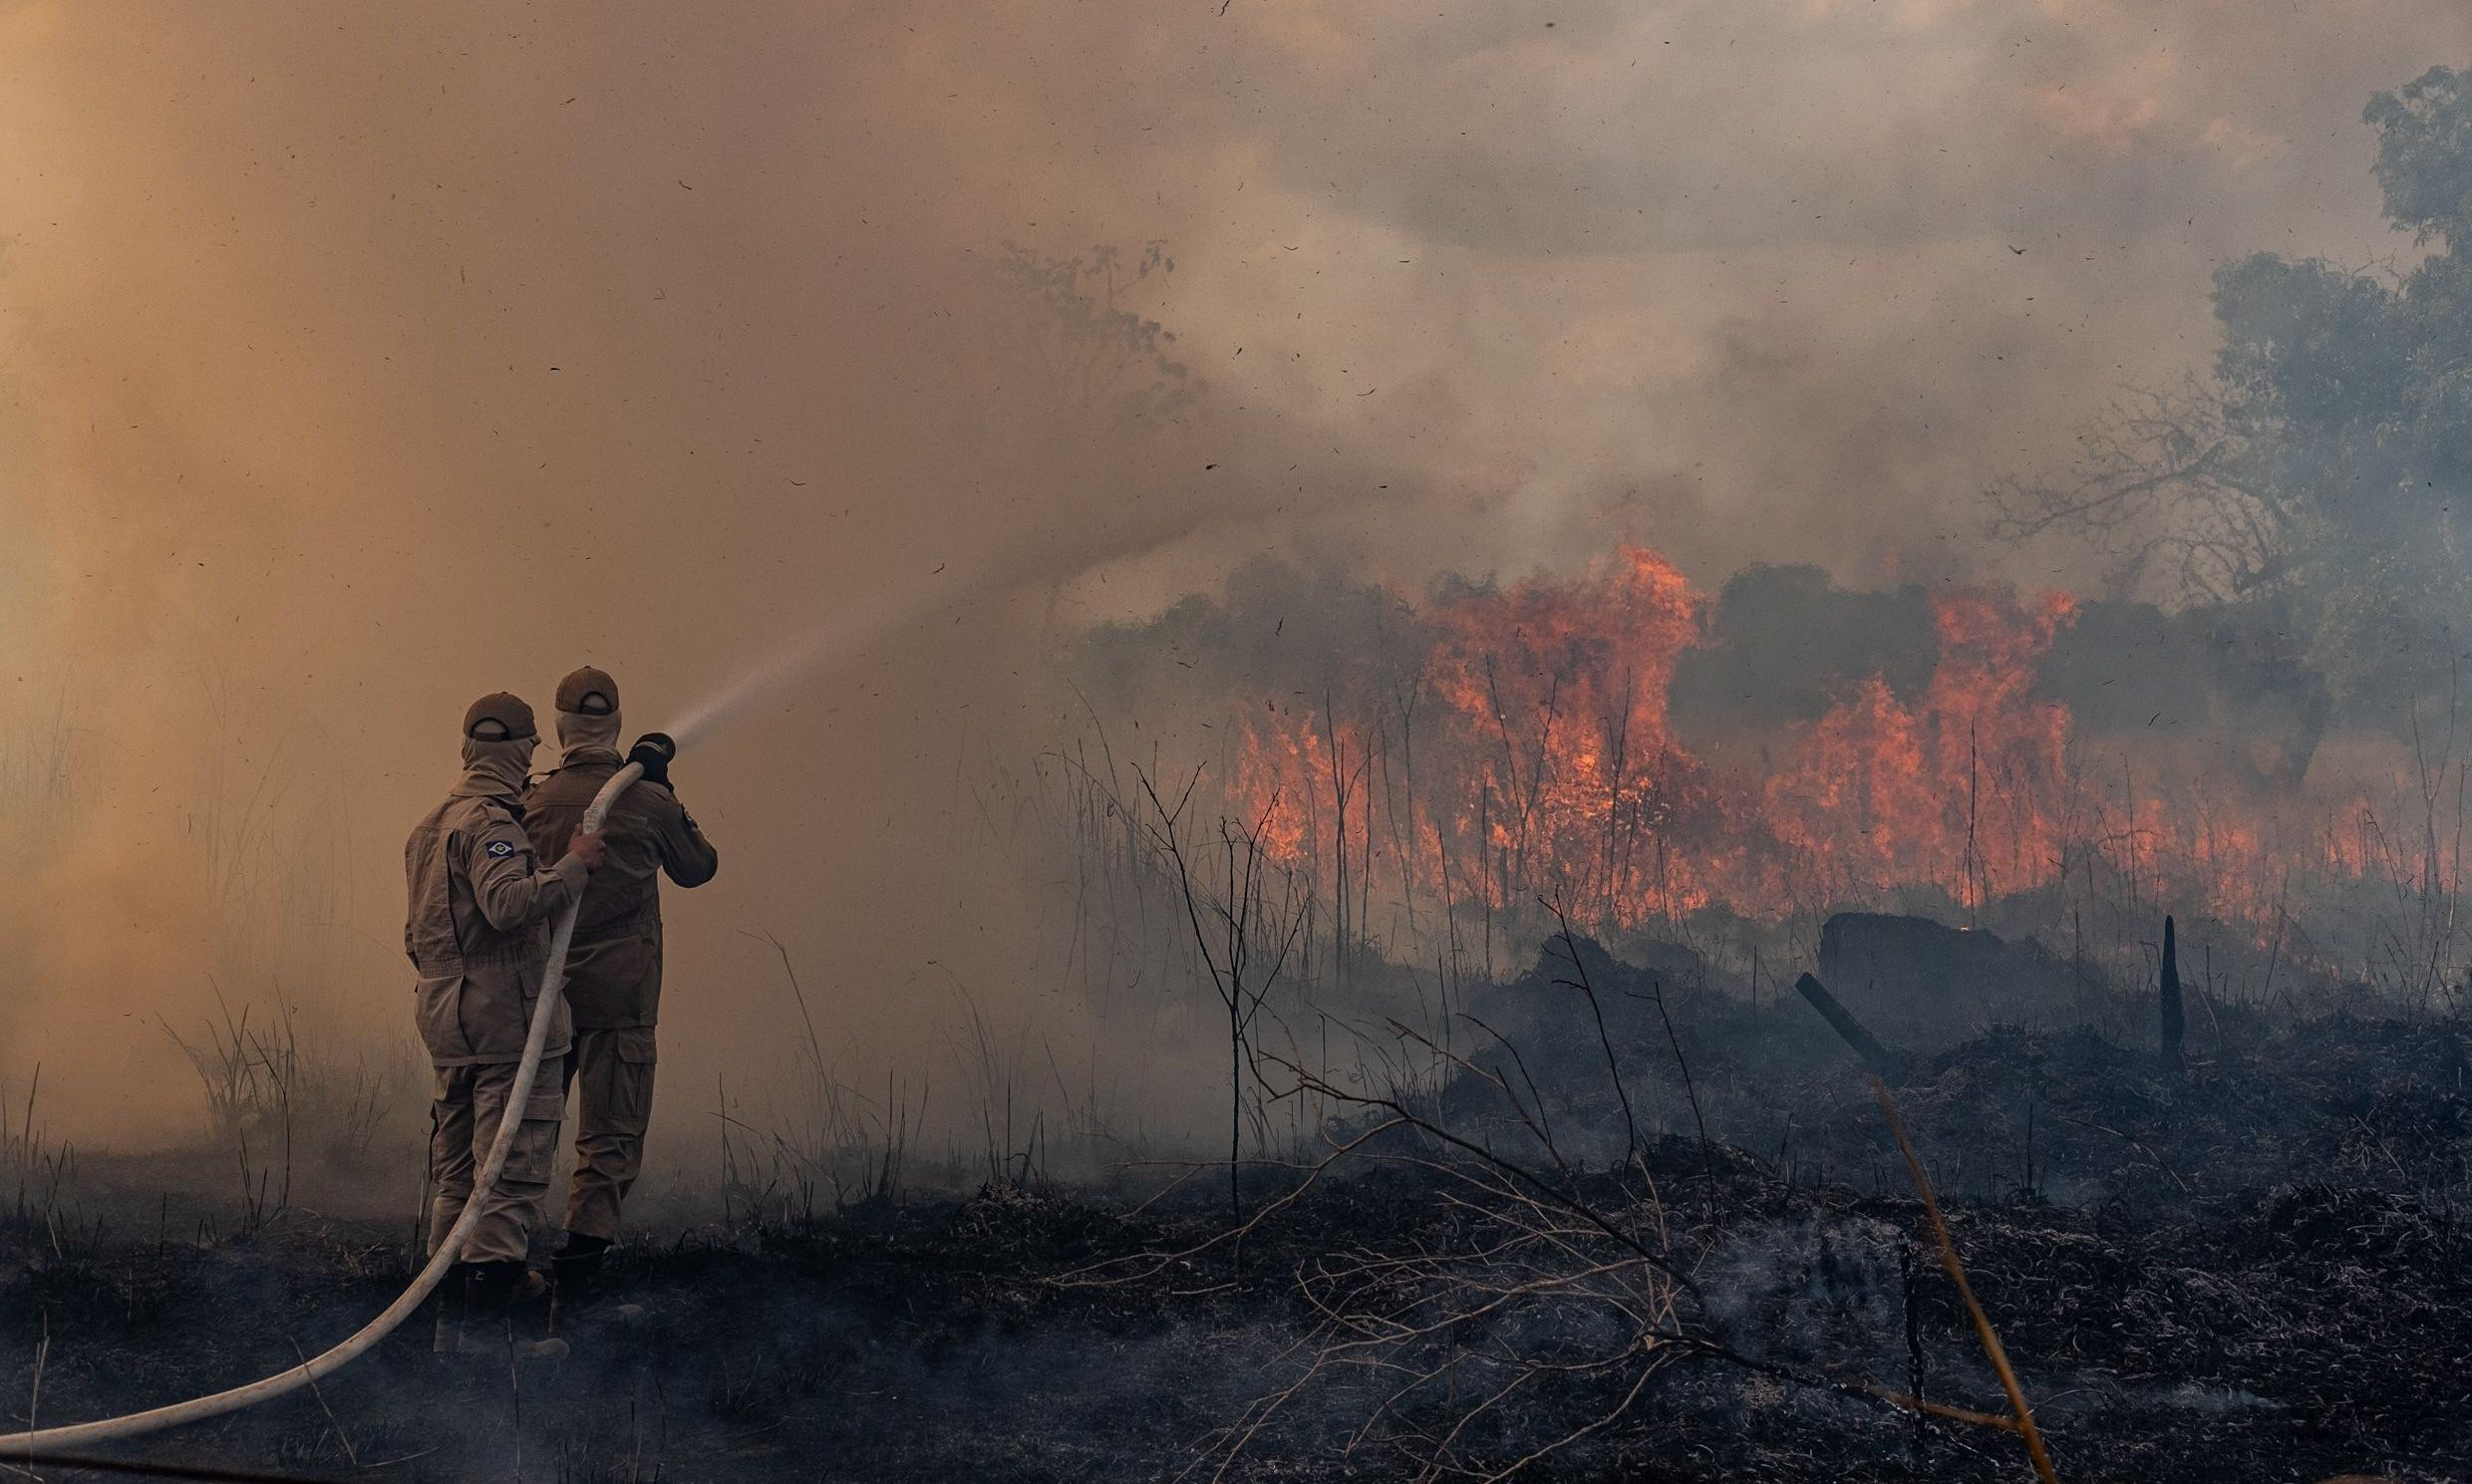 Do the Brazil Amazon fires justify environmental interventionism?